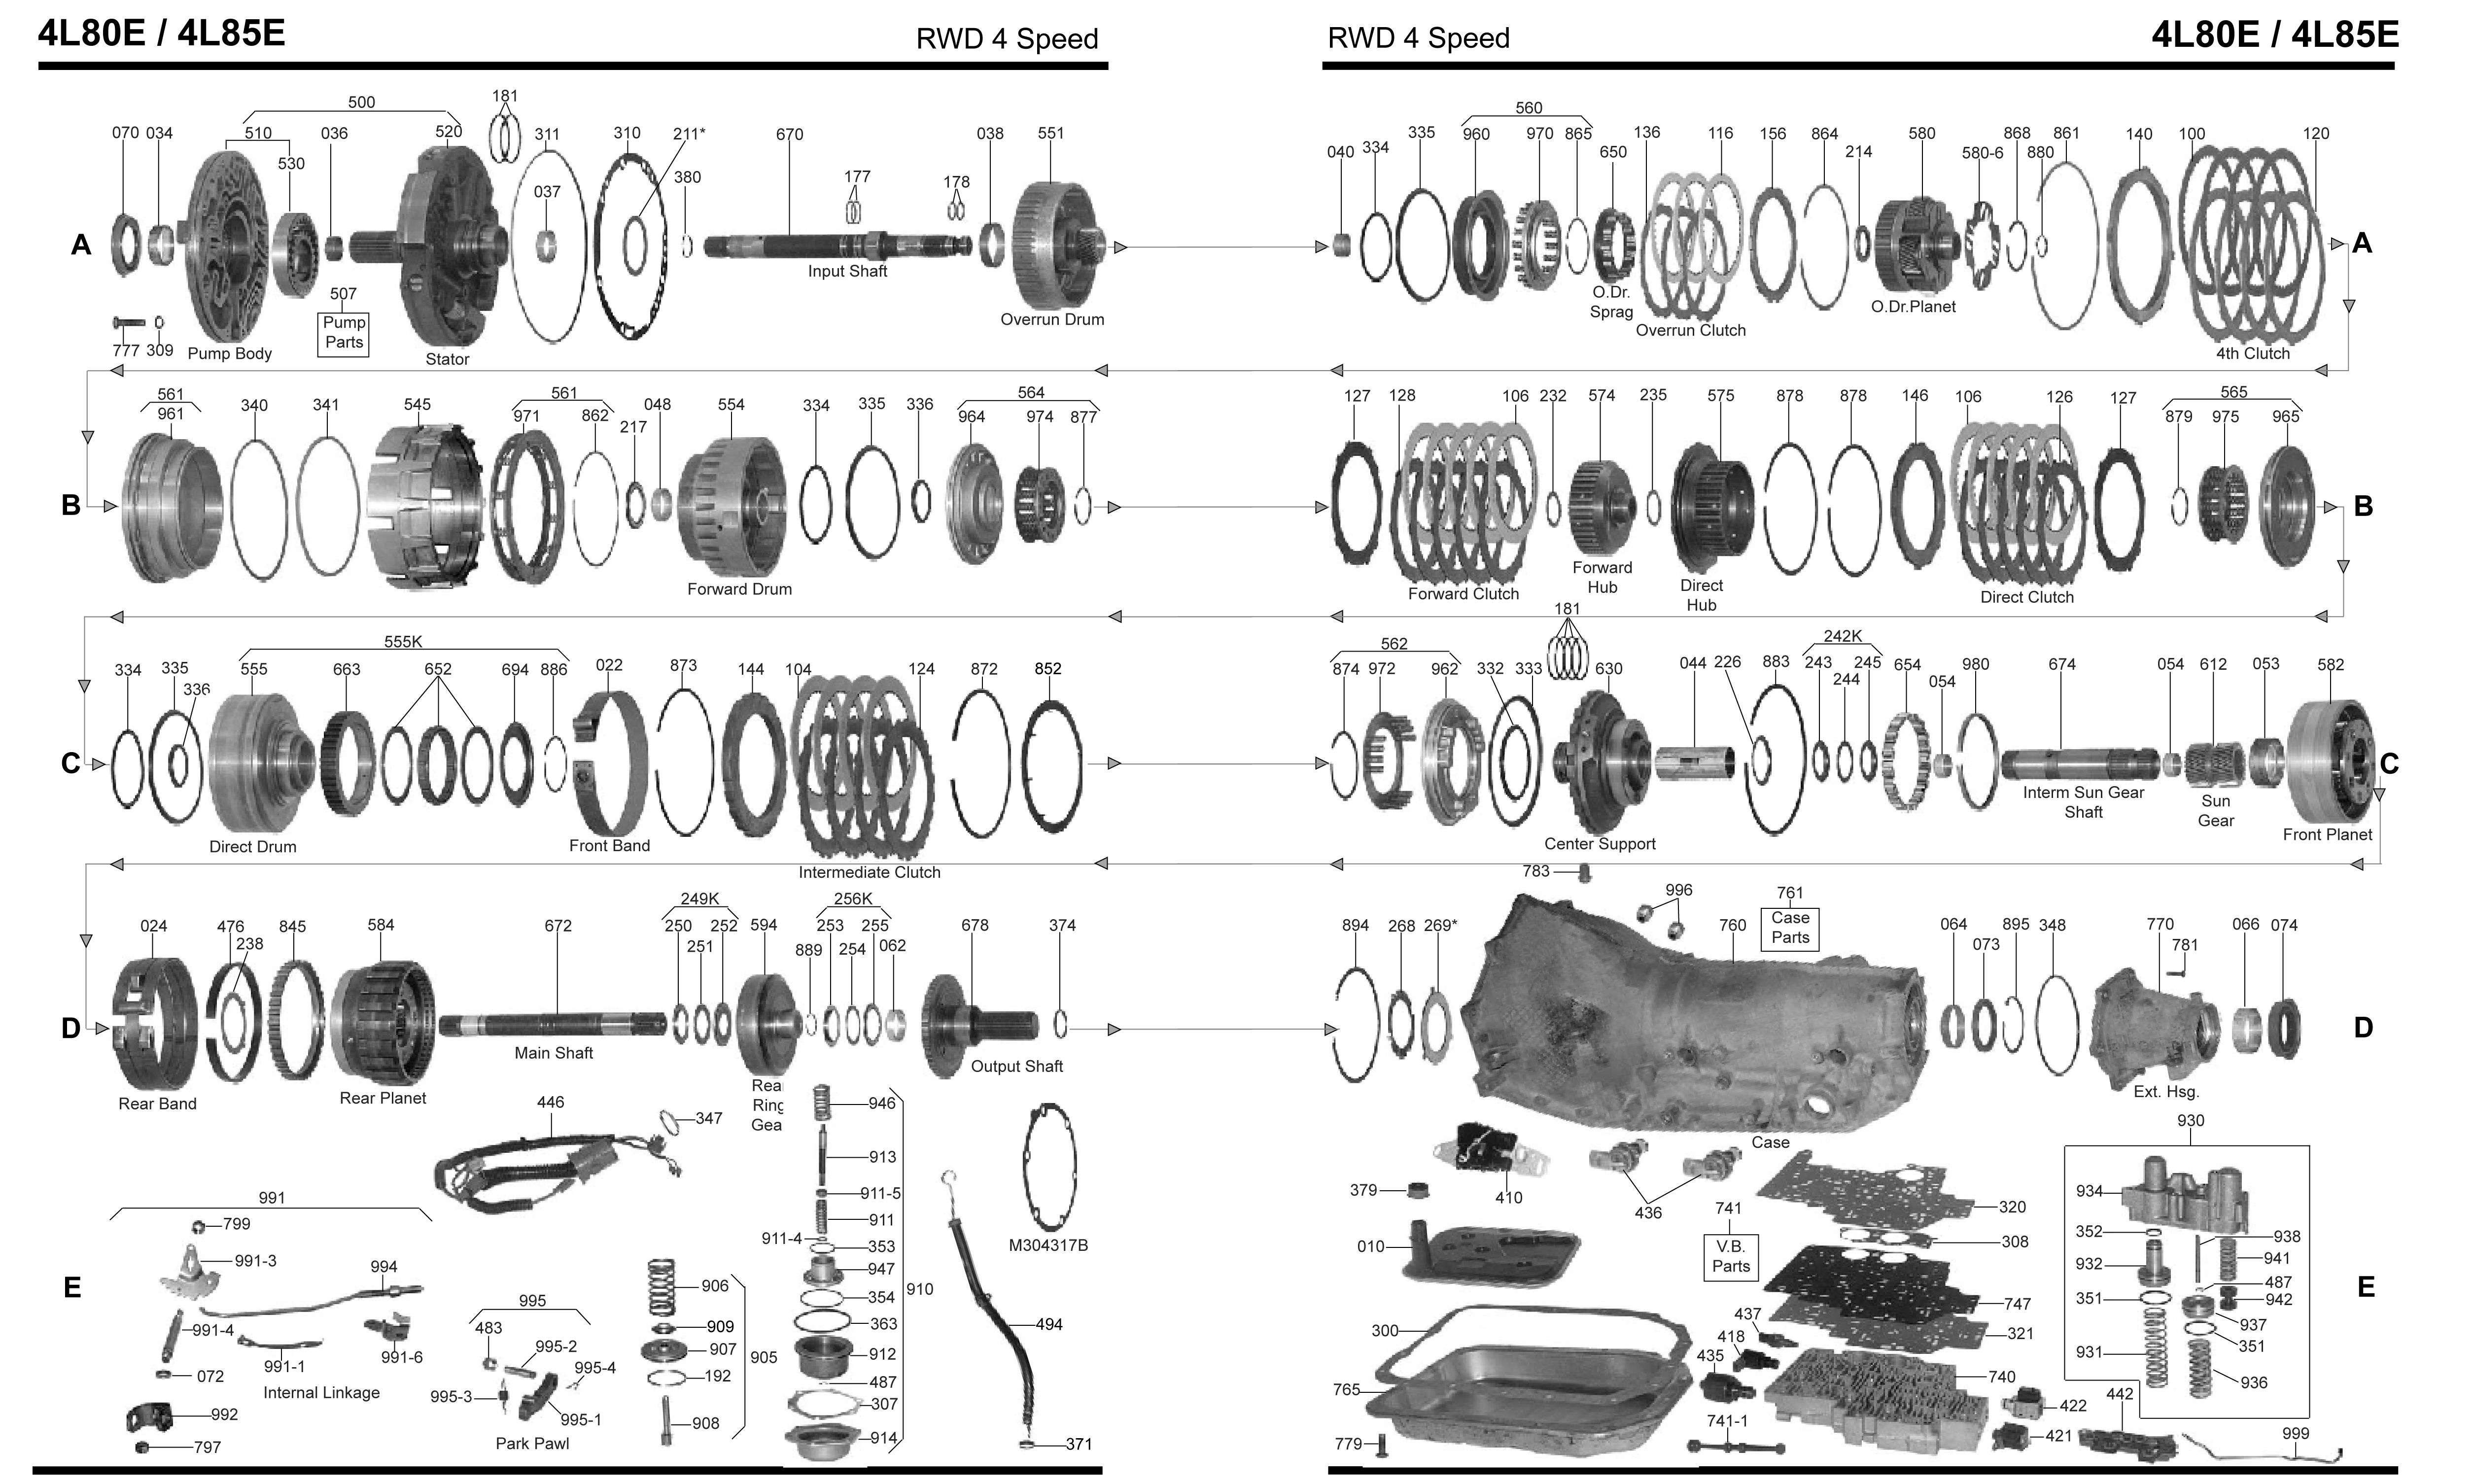 medium resolution of automatic transmission line drawings auto trans chartparts diagram for 4l80 e transmission yahoo search results yahoo